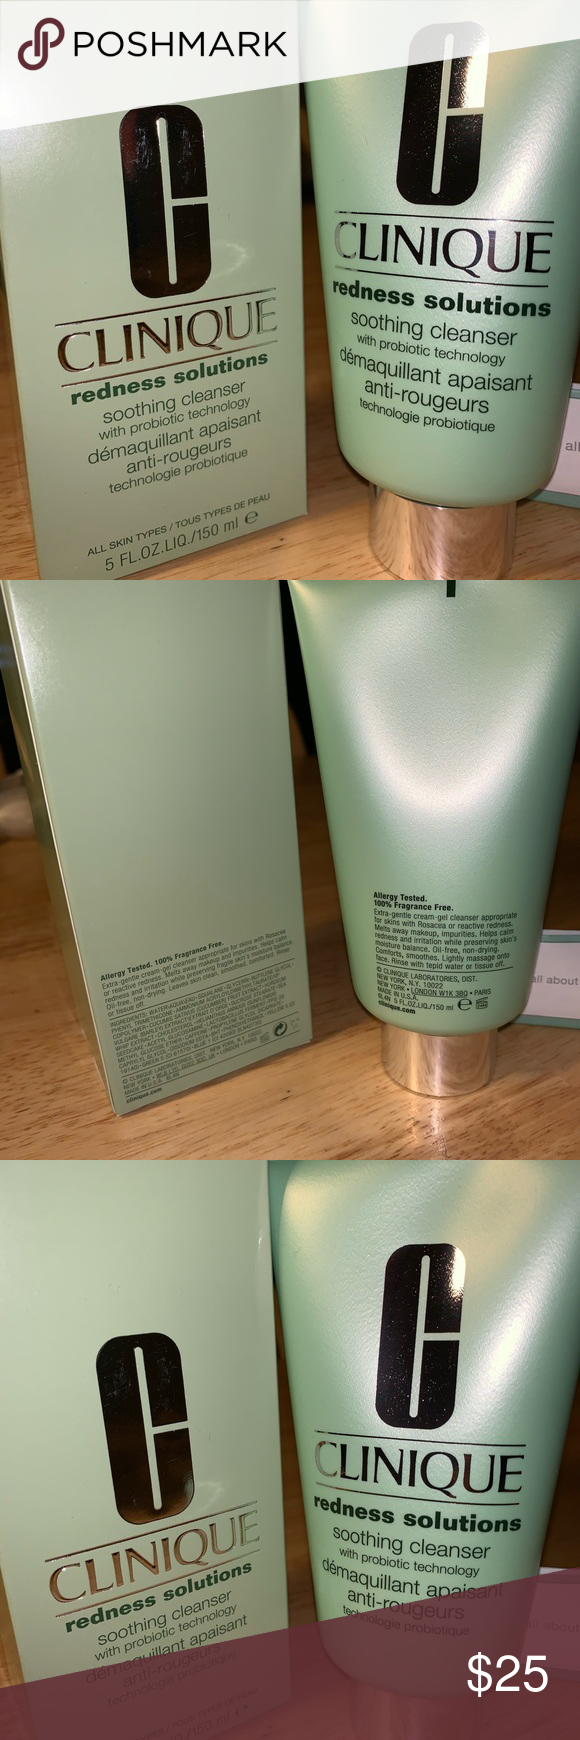 Clinique redness solutions soothing cleanser NEW